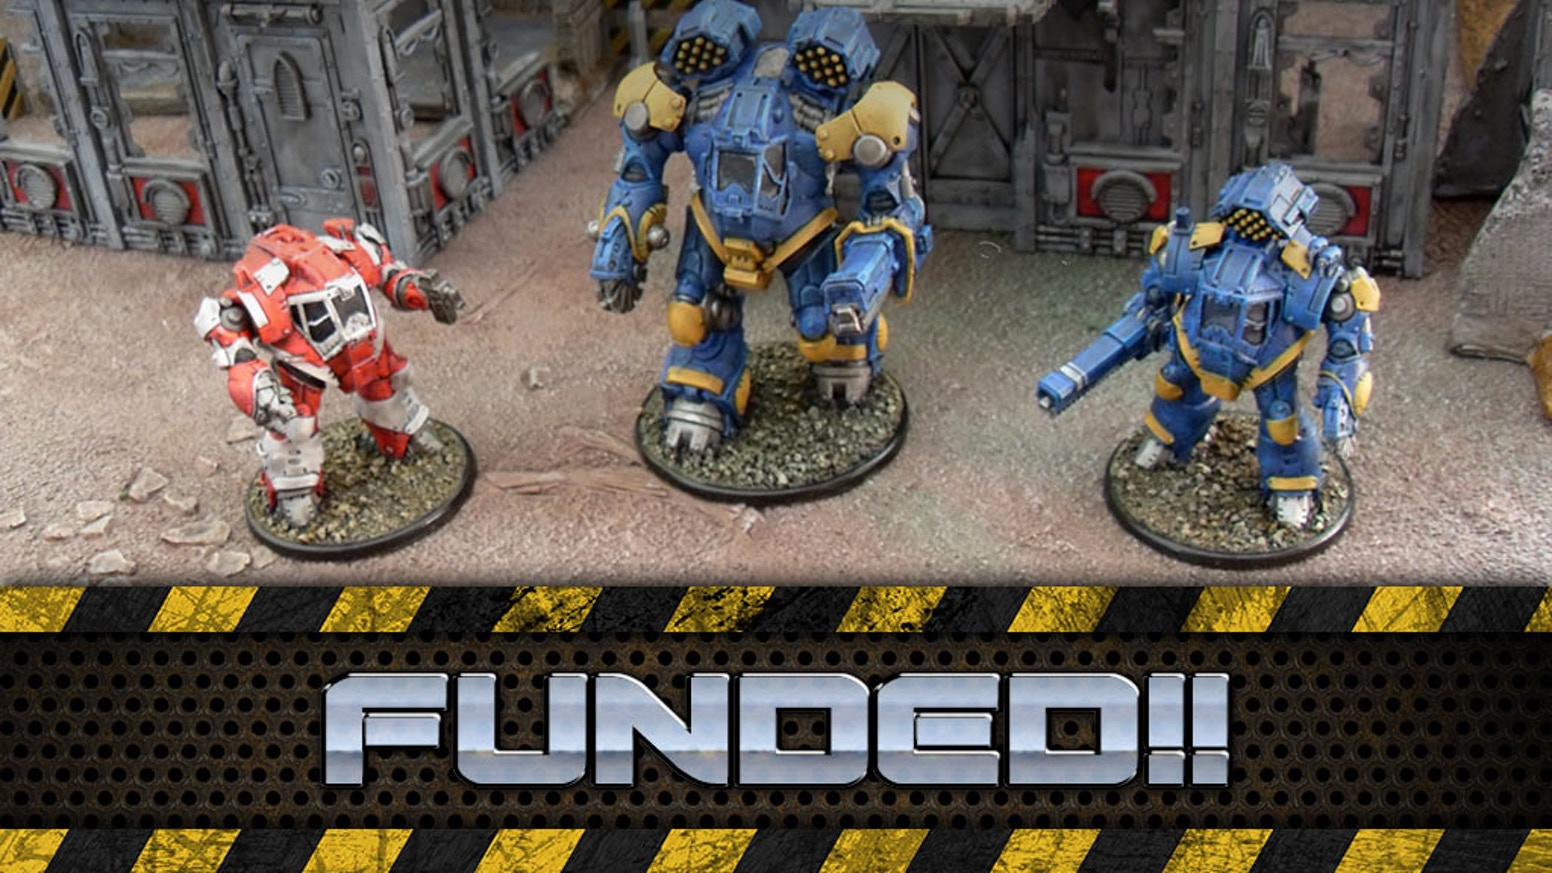 A 28mm Heroic Scale Tabletop Skirmish Game of Giant Robot Metal-on-Metal Carnage!